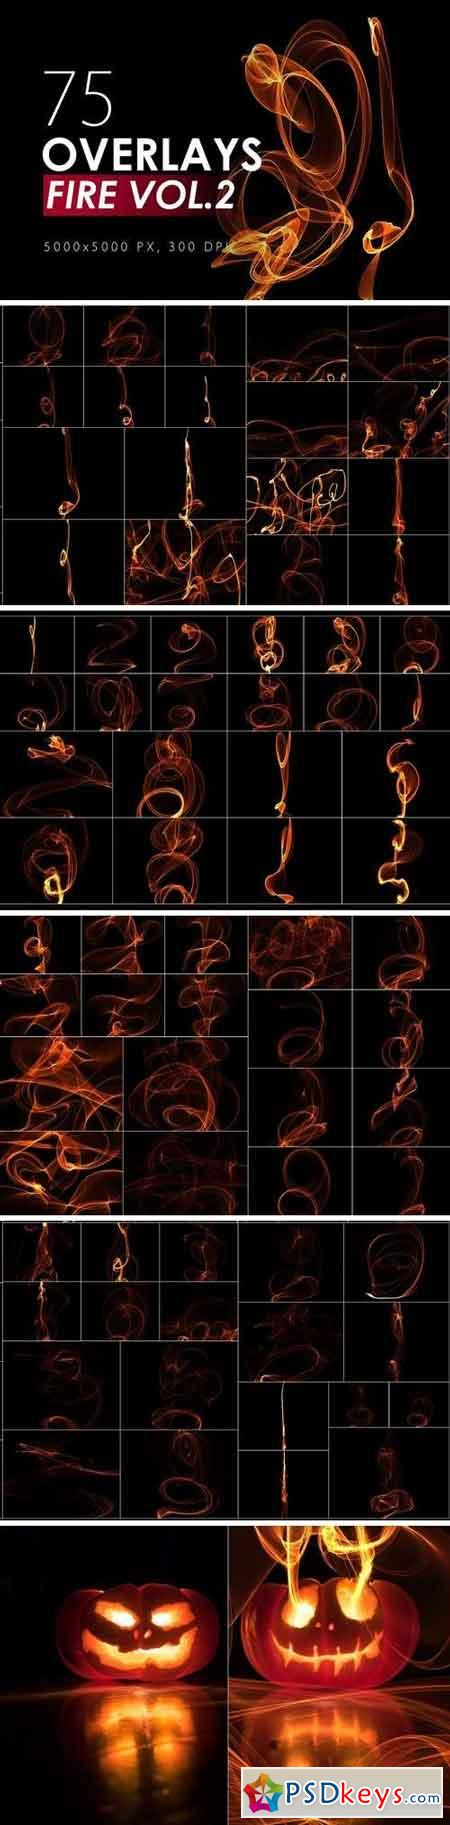 75 Abstract Fire Overlays Vol 2